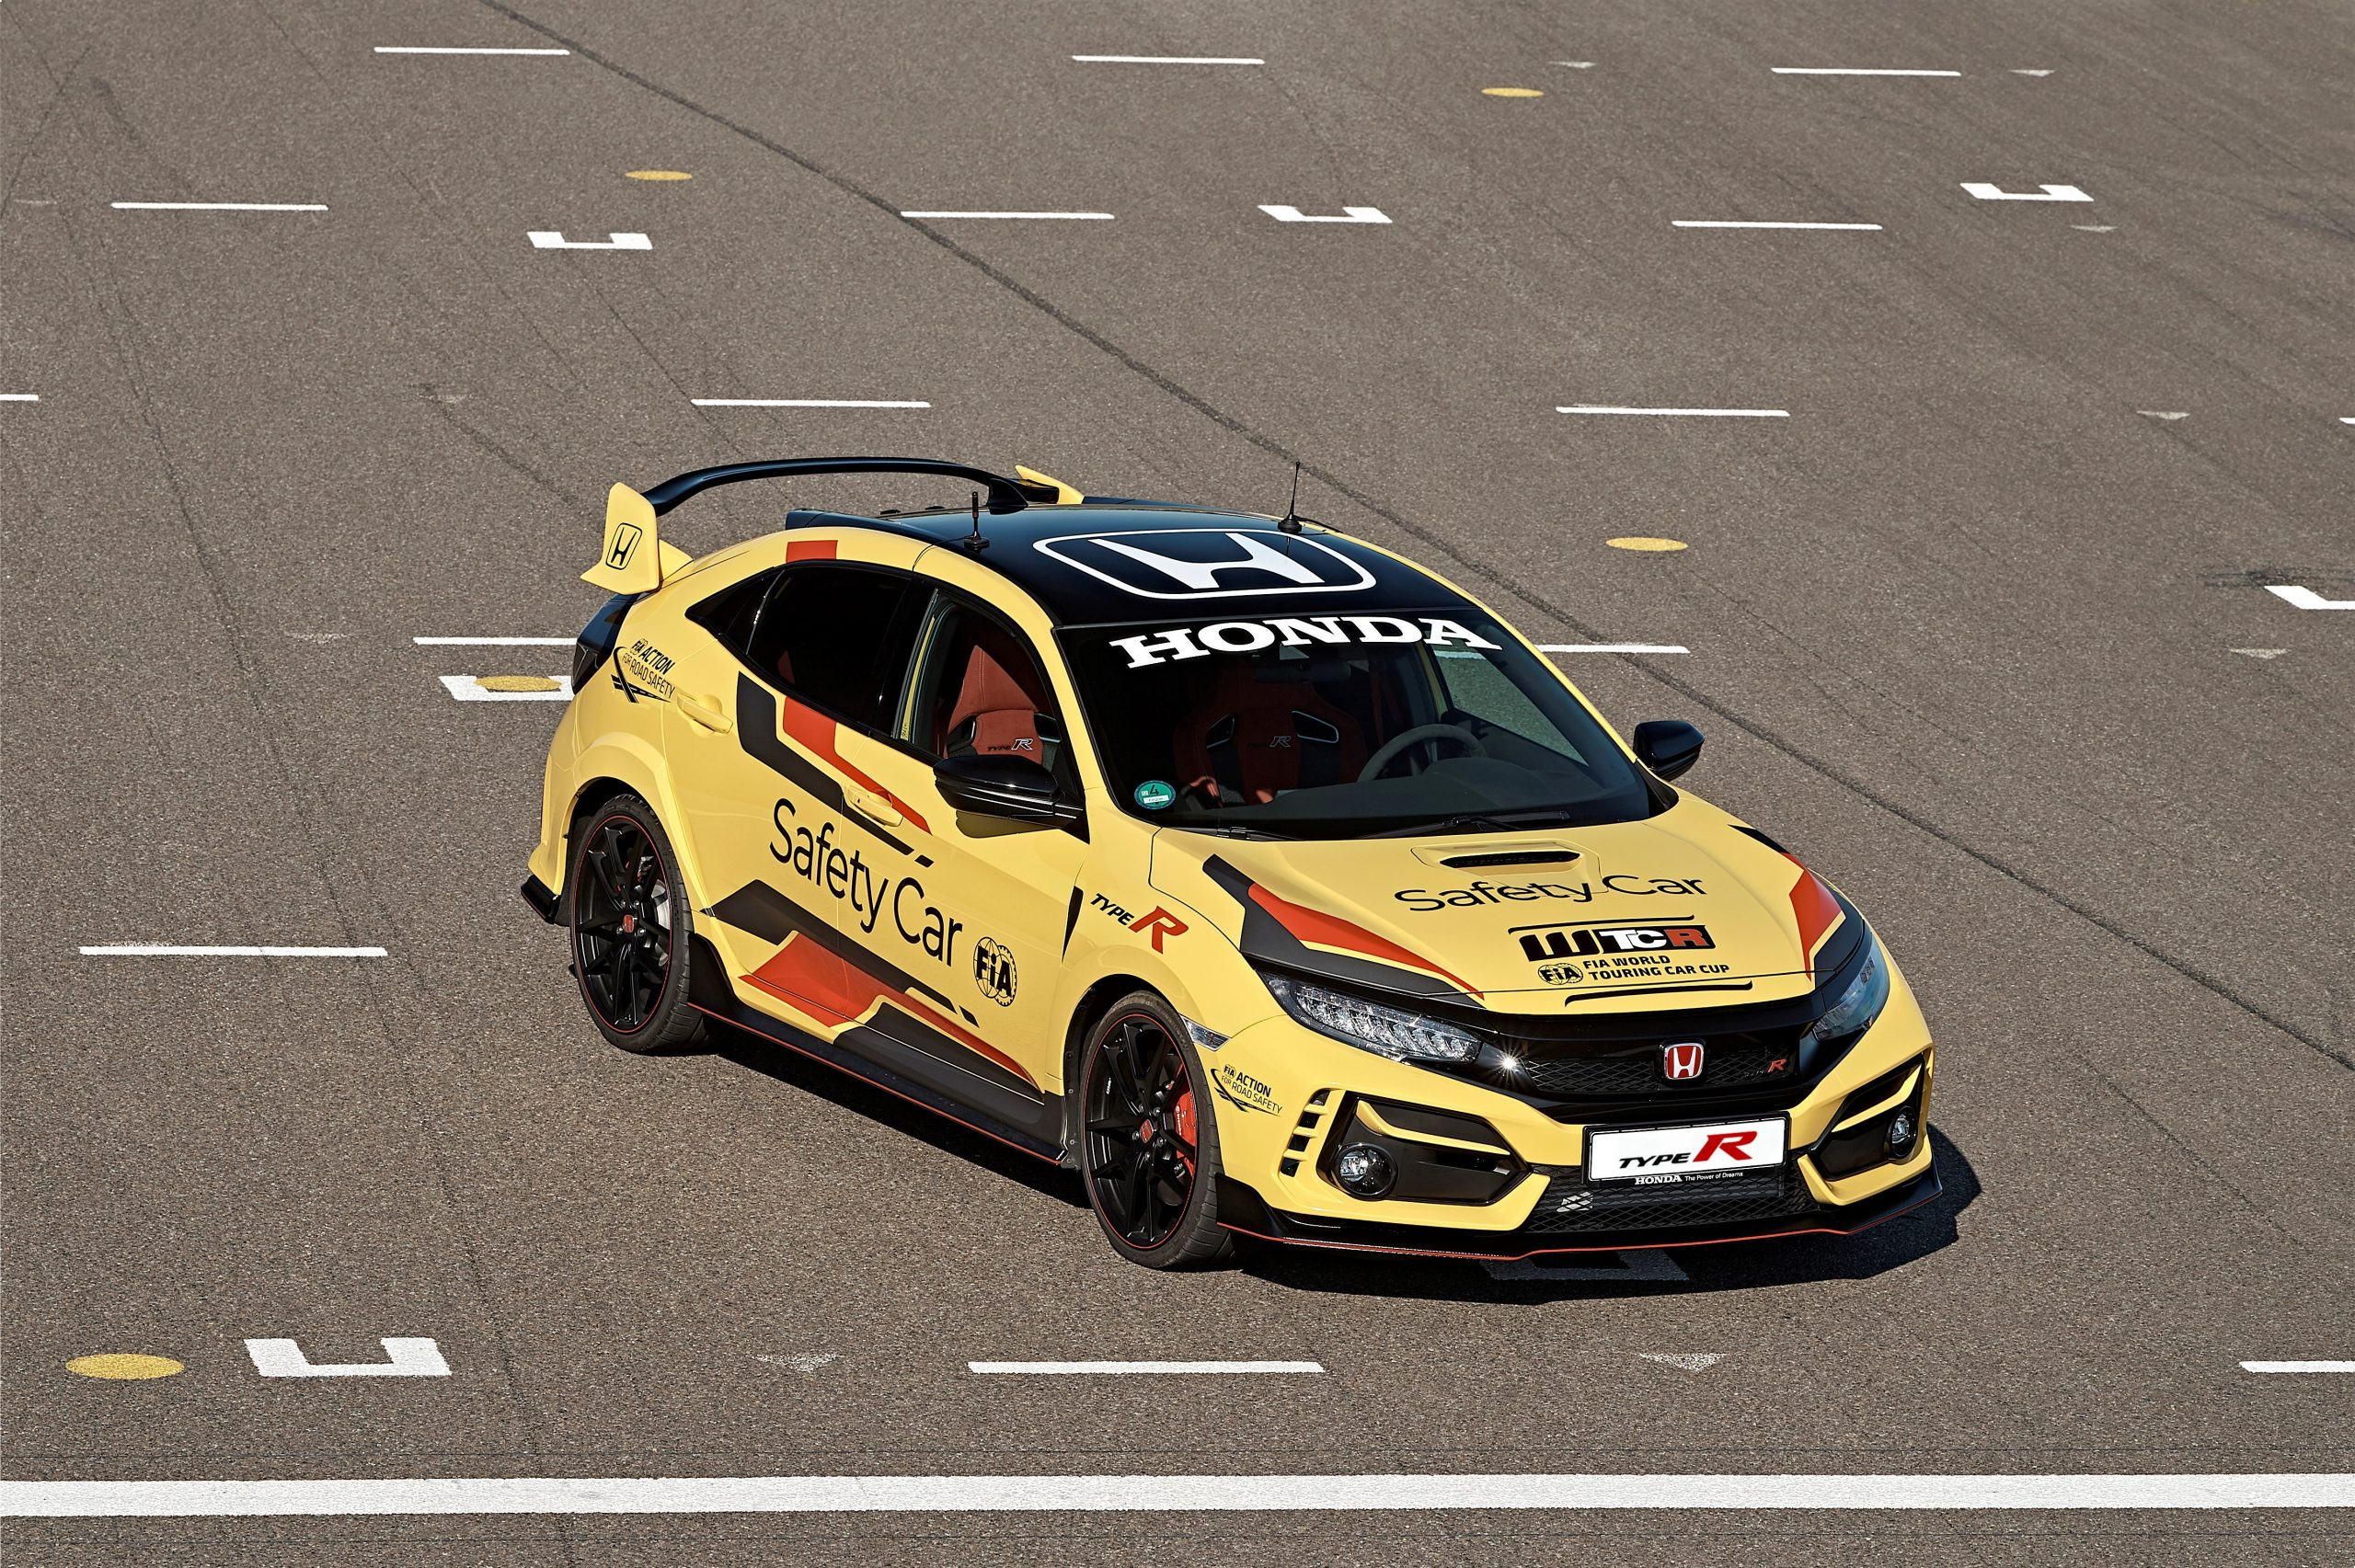 303940 Honda Civic Type R Limited Edition Is The 2020 WTCR Official Safety Car Scaled